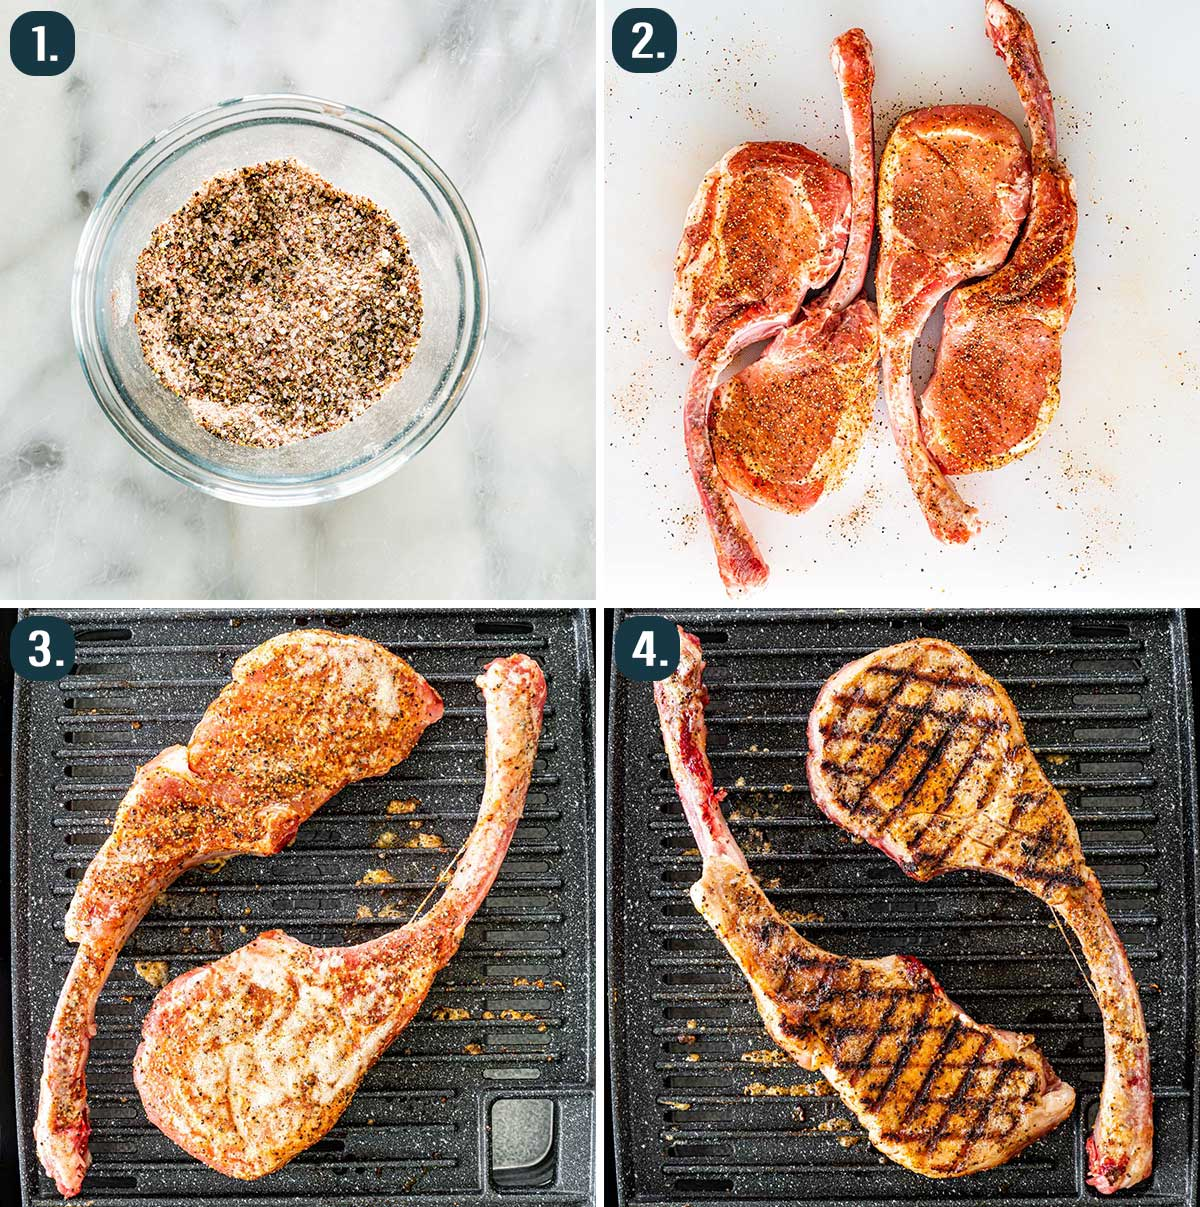 detailed process shots showing how to make grilled pork chops